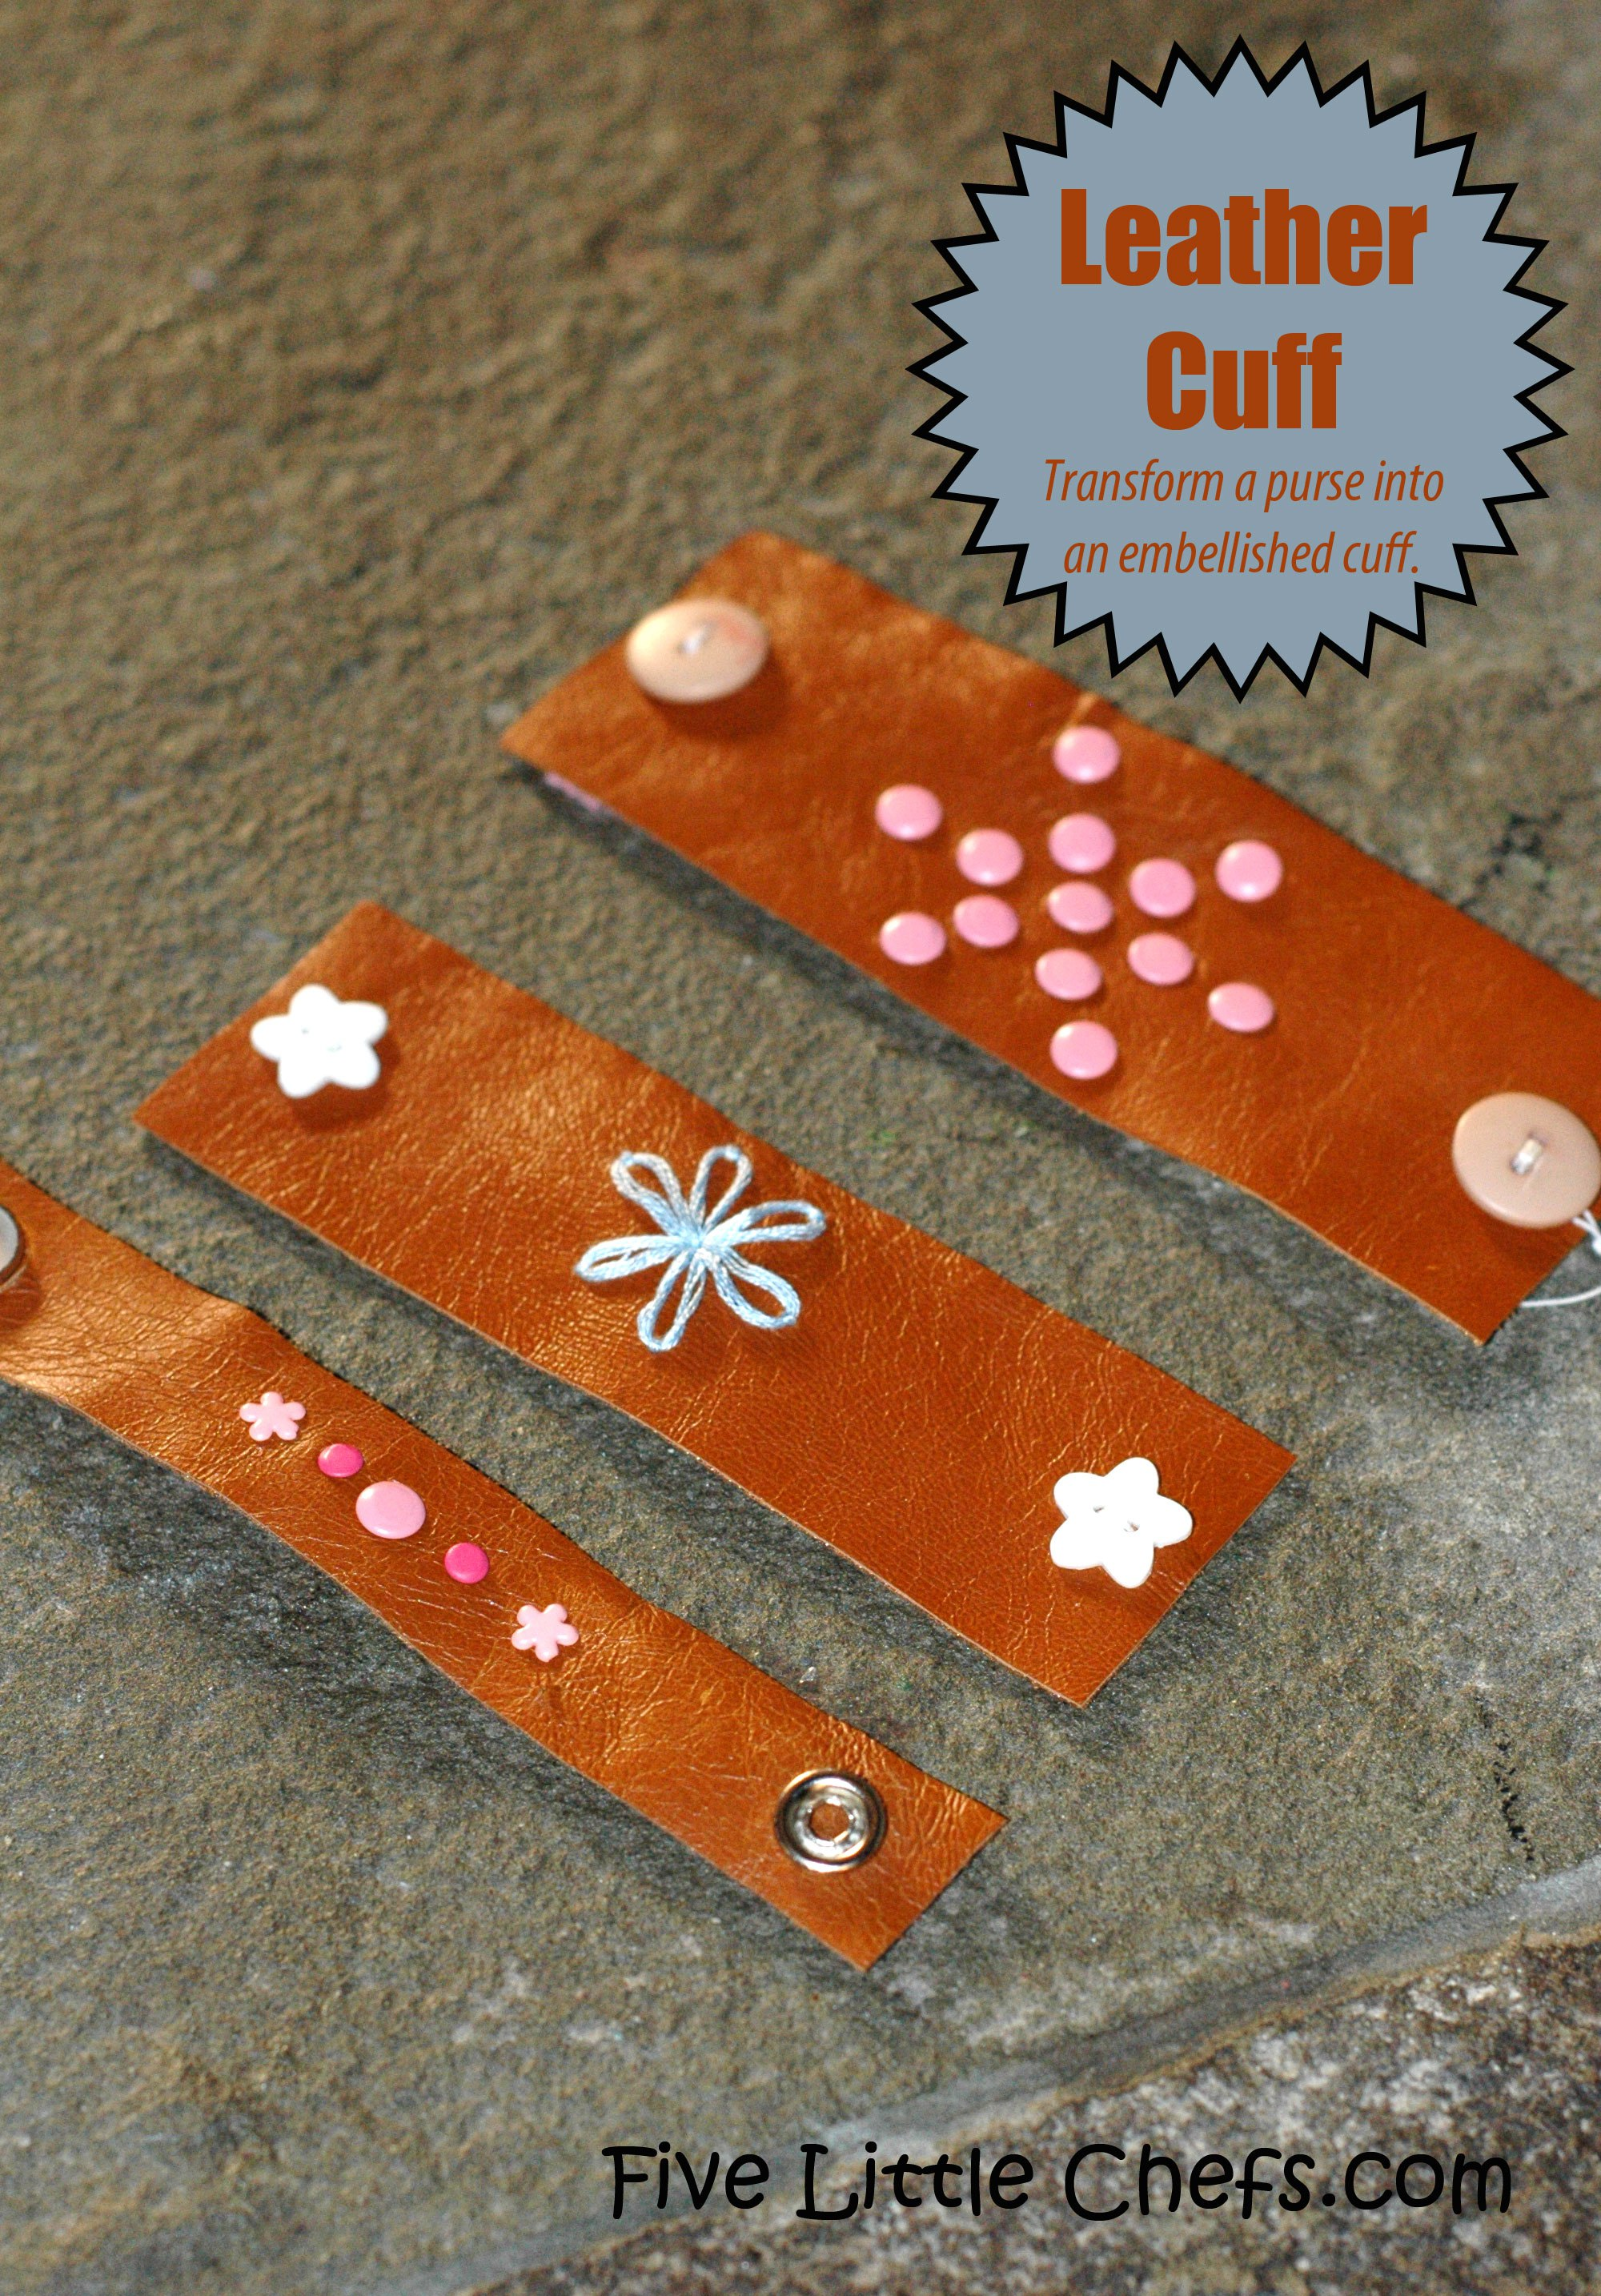 Do you have a leather/pleather purse or coat? Transform it into an embellished cuff at fivelittlechefs.com #cuff #kids crafts